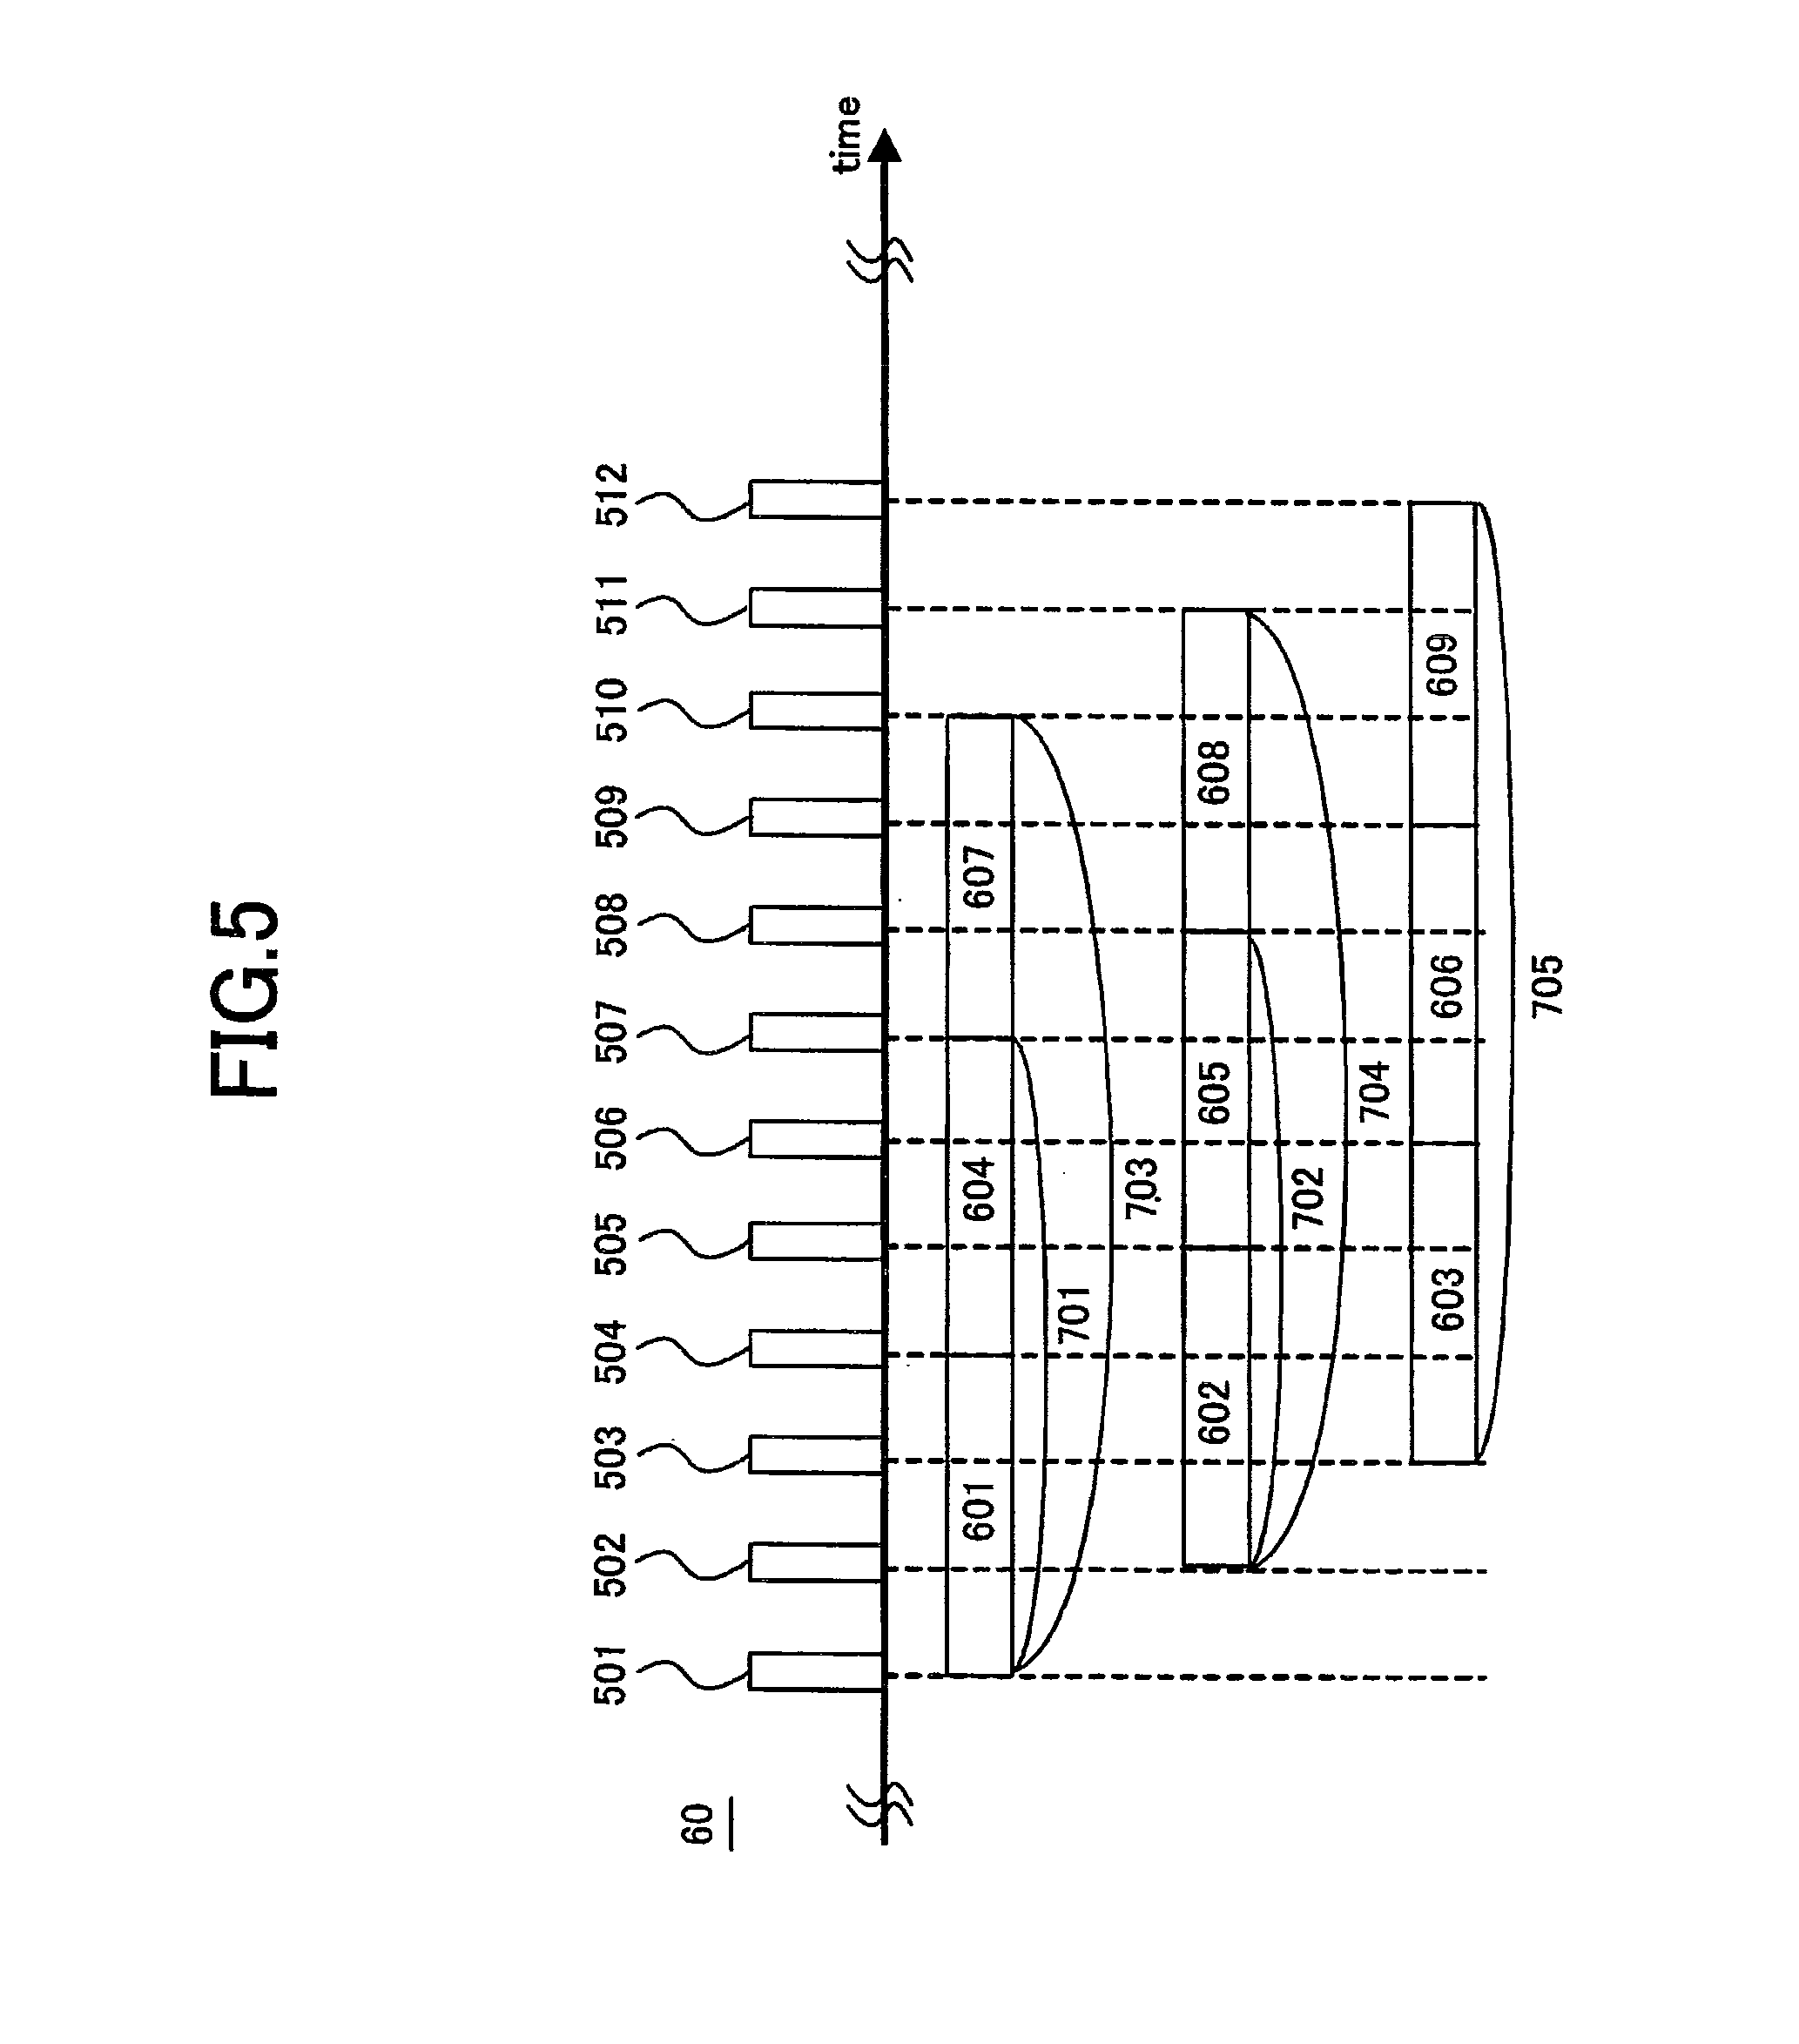 audio-video recording device